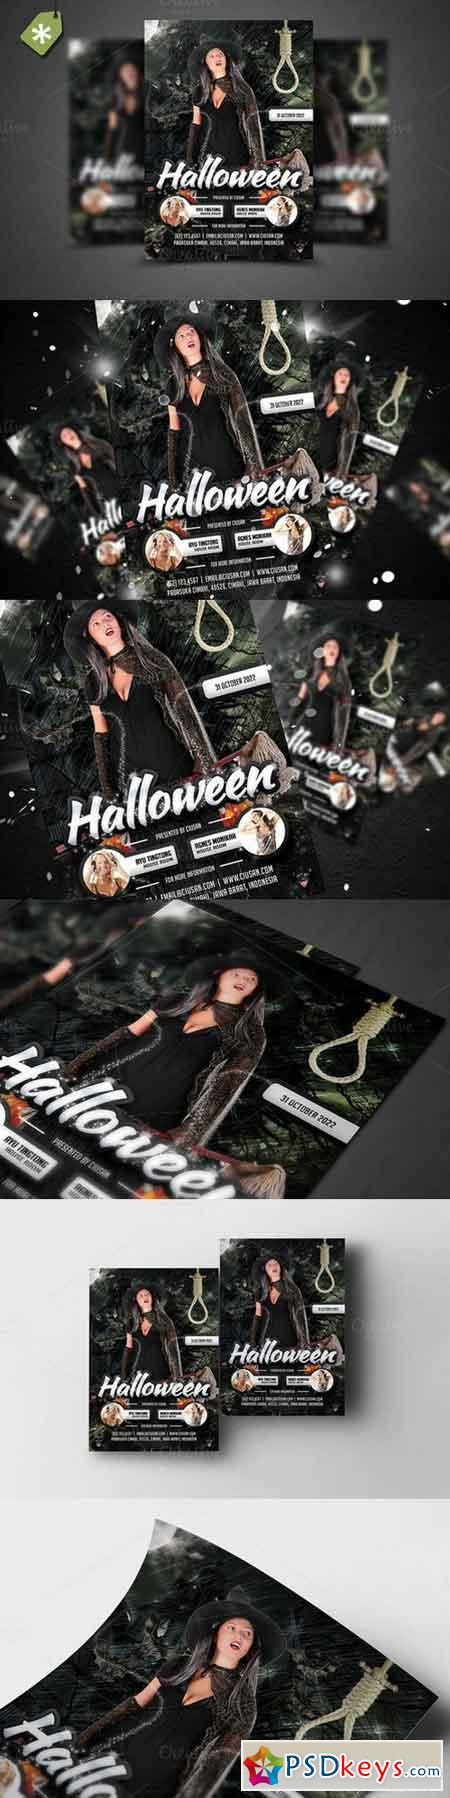 Halloween Flyer Template 6 874143